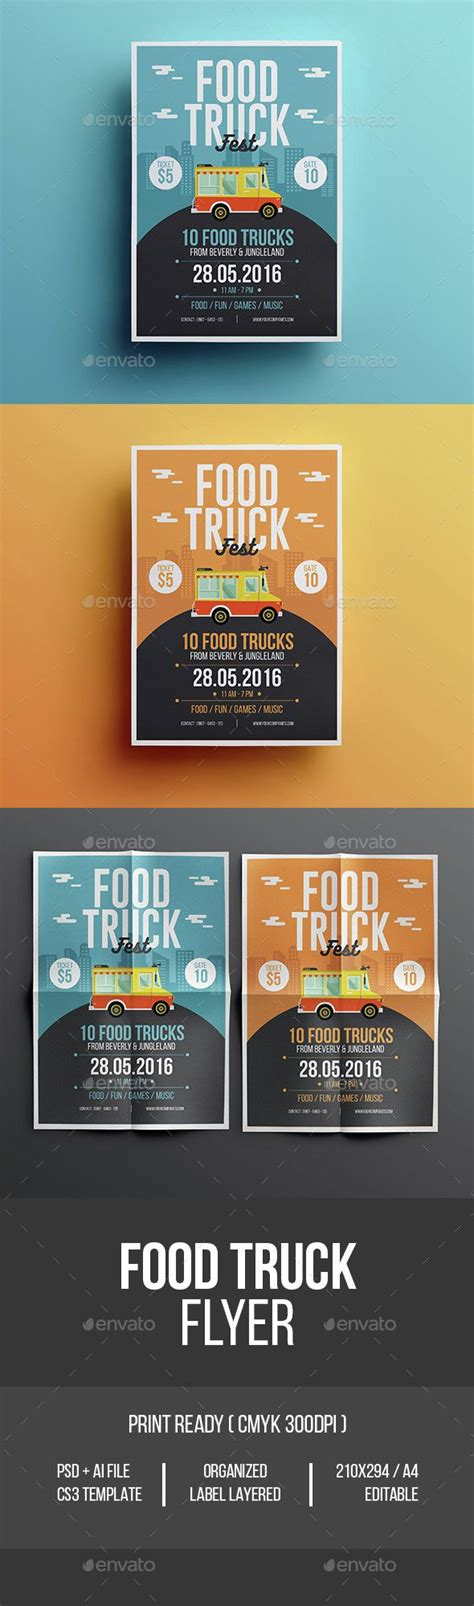 design event flyer food truck flyer gardens creative and promotion